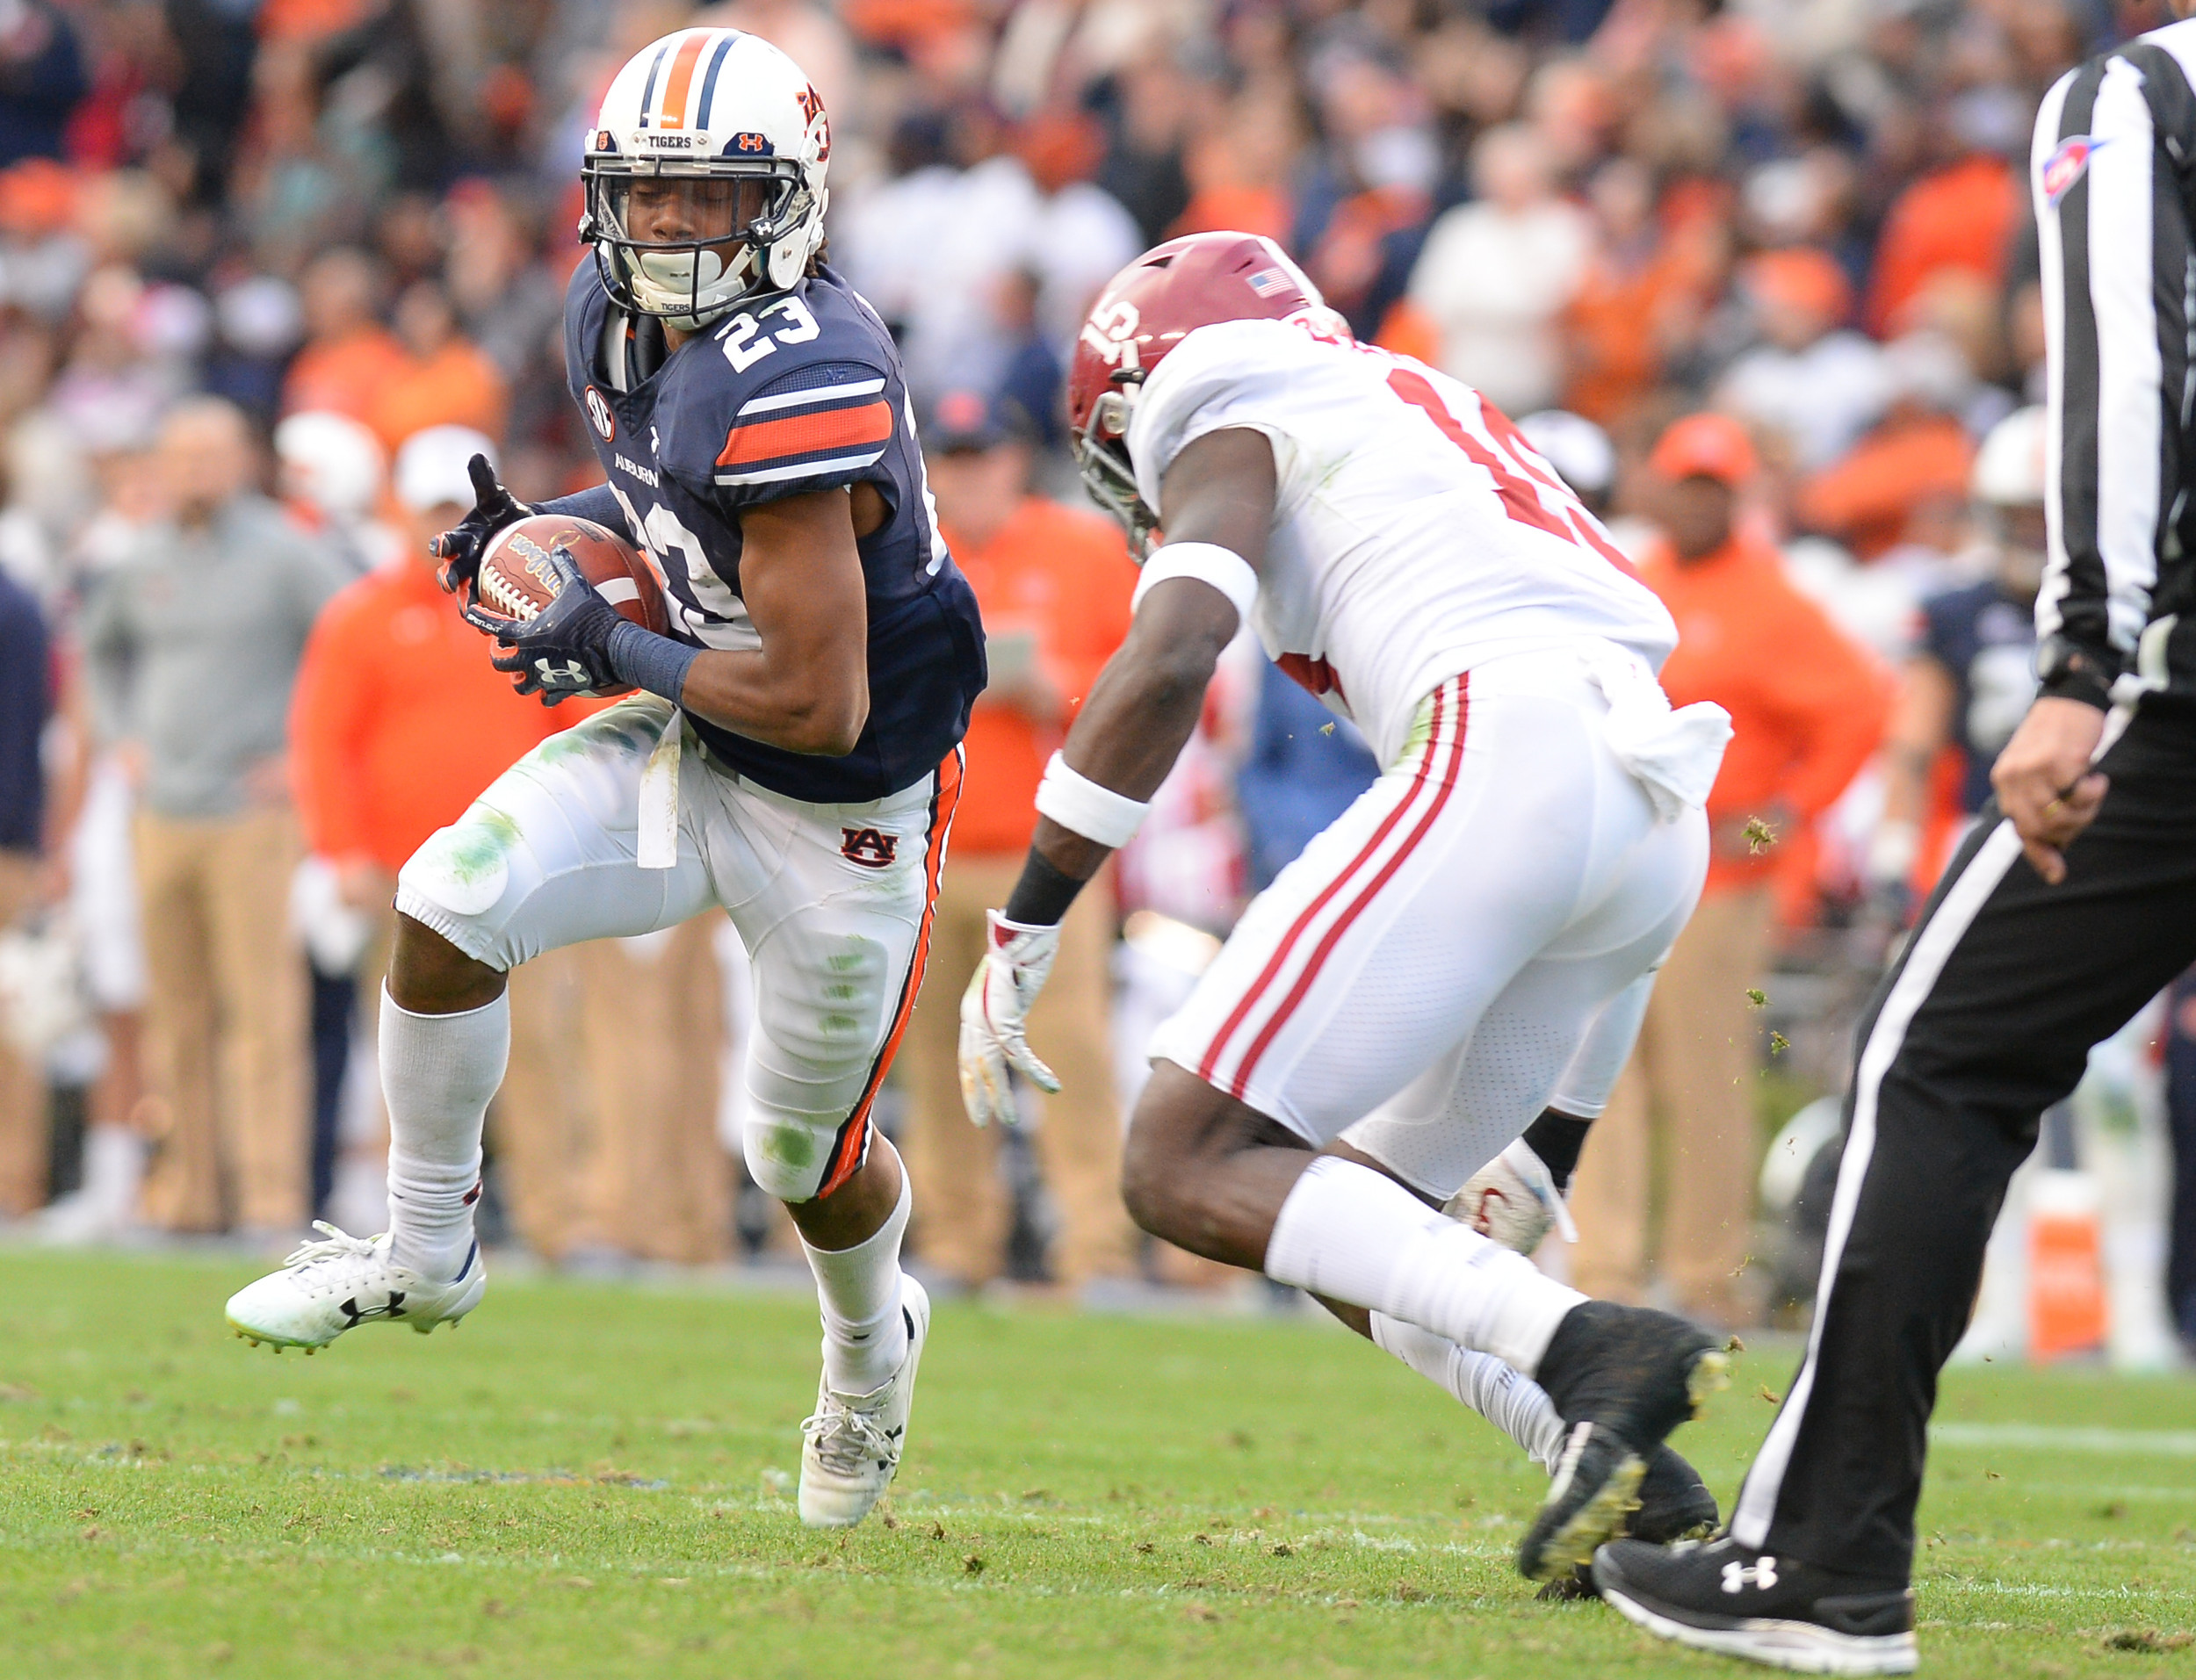 Auburn Tigers wide receiver Ryan Davis (23) eye Alabama Crimson Tide defensive back Ronnie Harrison (15) during the first half of Saturday's game, at Jordan-Hare Stadium.